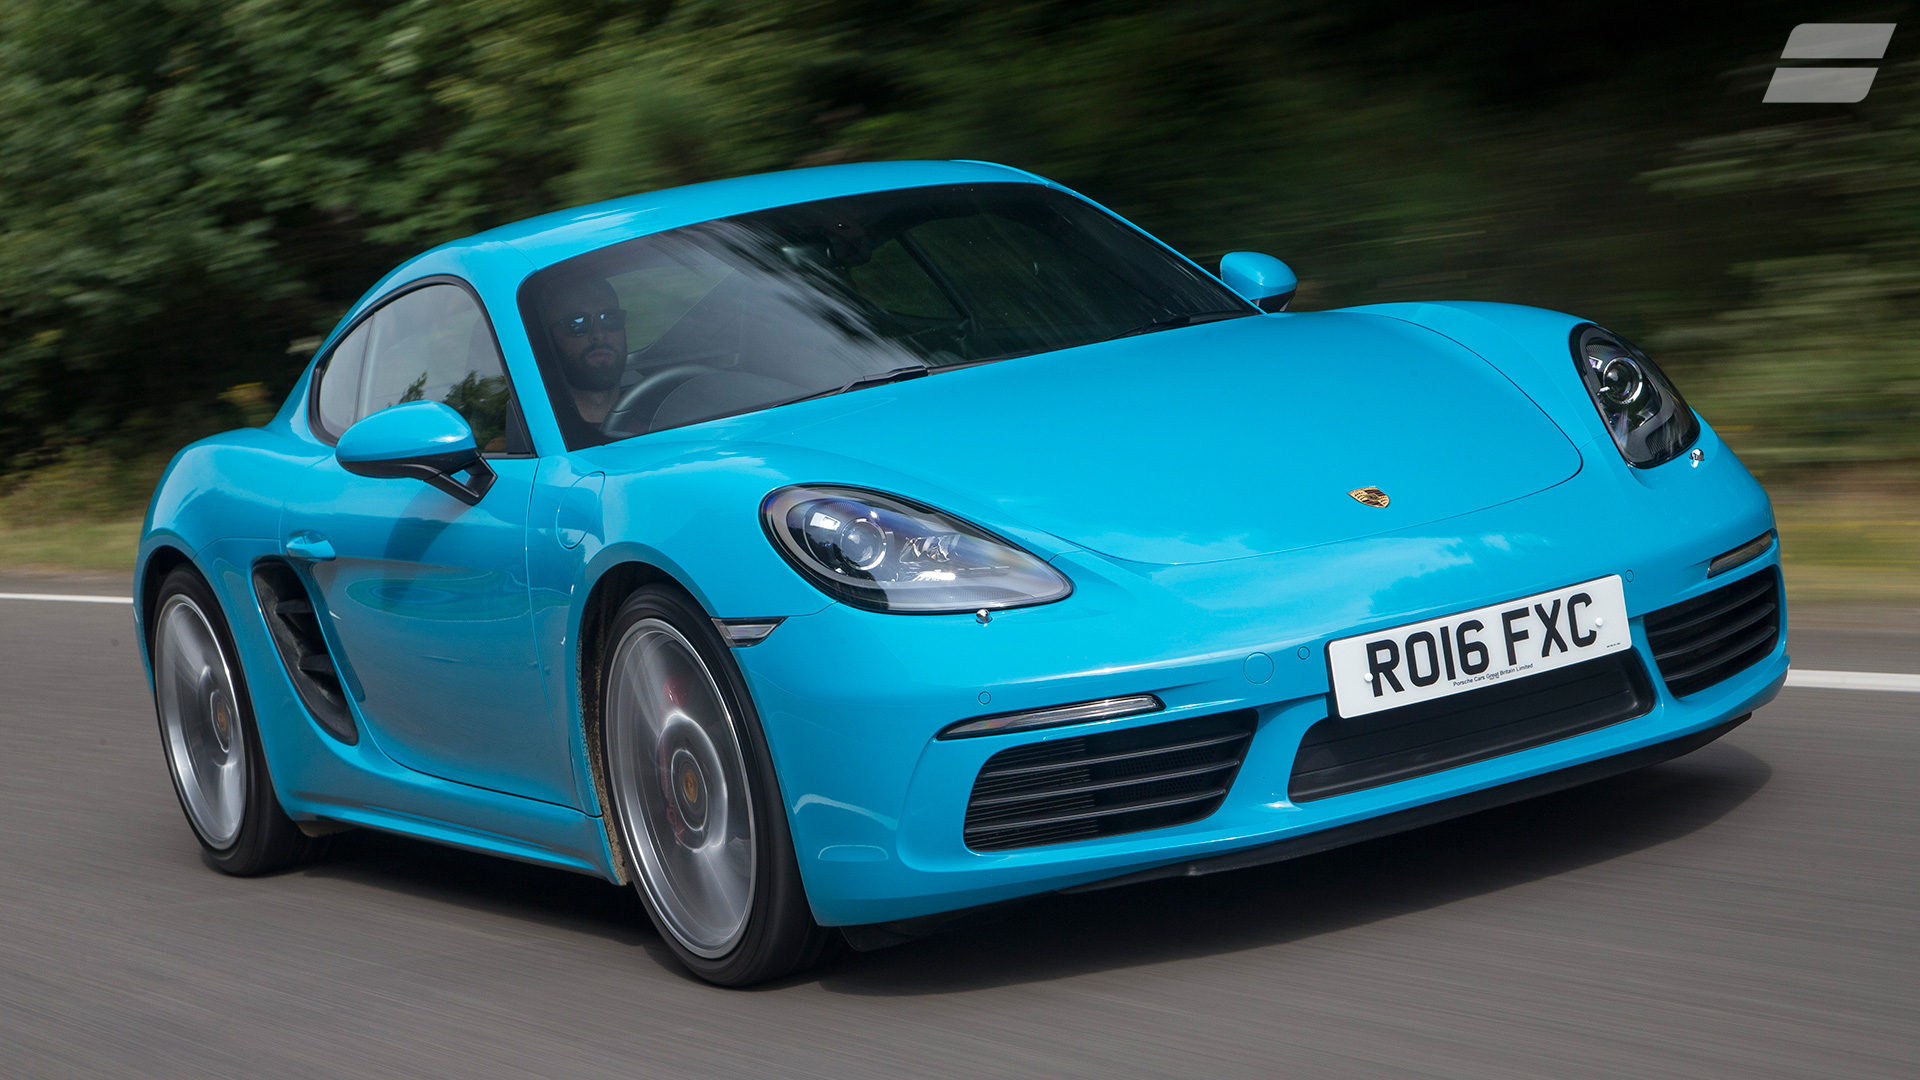 Used Porsche 718 Cayman S Cars For Sale On Auto Trader Uk